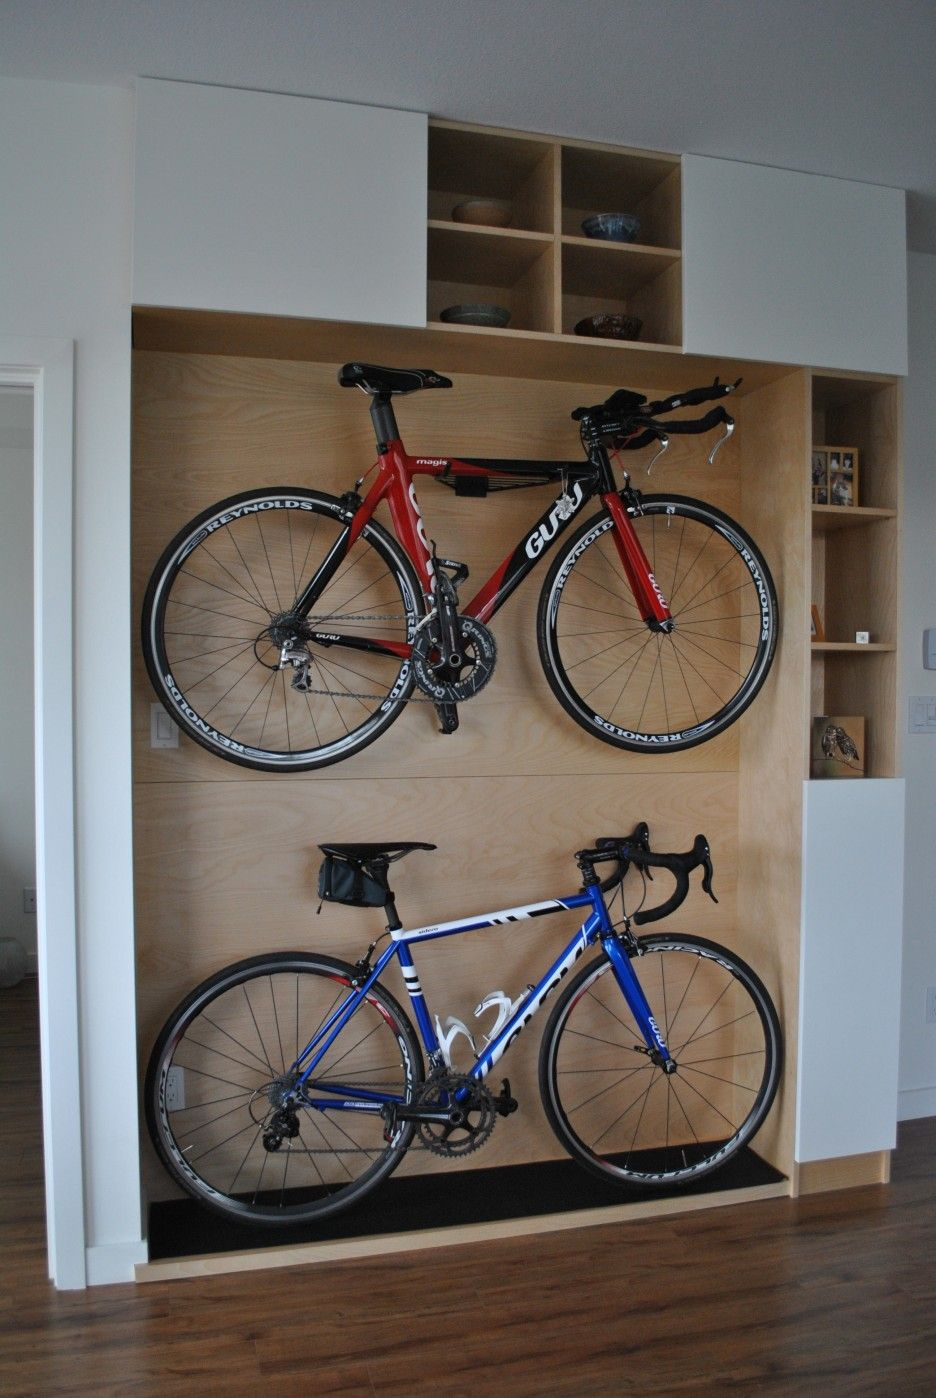 Charming Indoor Bike Storage Ideas Part - 7: Cool Indoor Bike Racks Design As Smart Bike Storage Solutions For Small  Spaces Ideas. Excellent Wooden Platform Design For Home Bikes Storage Ideas  Combined ...